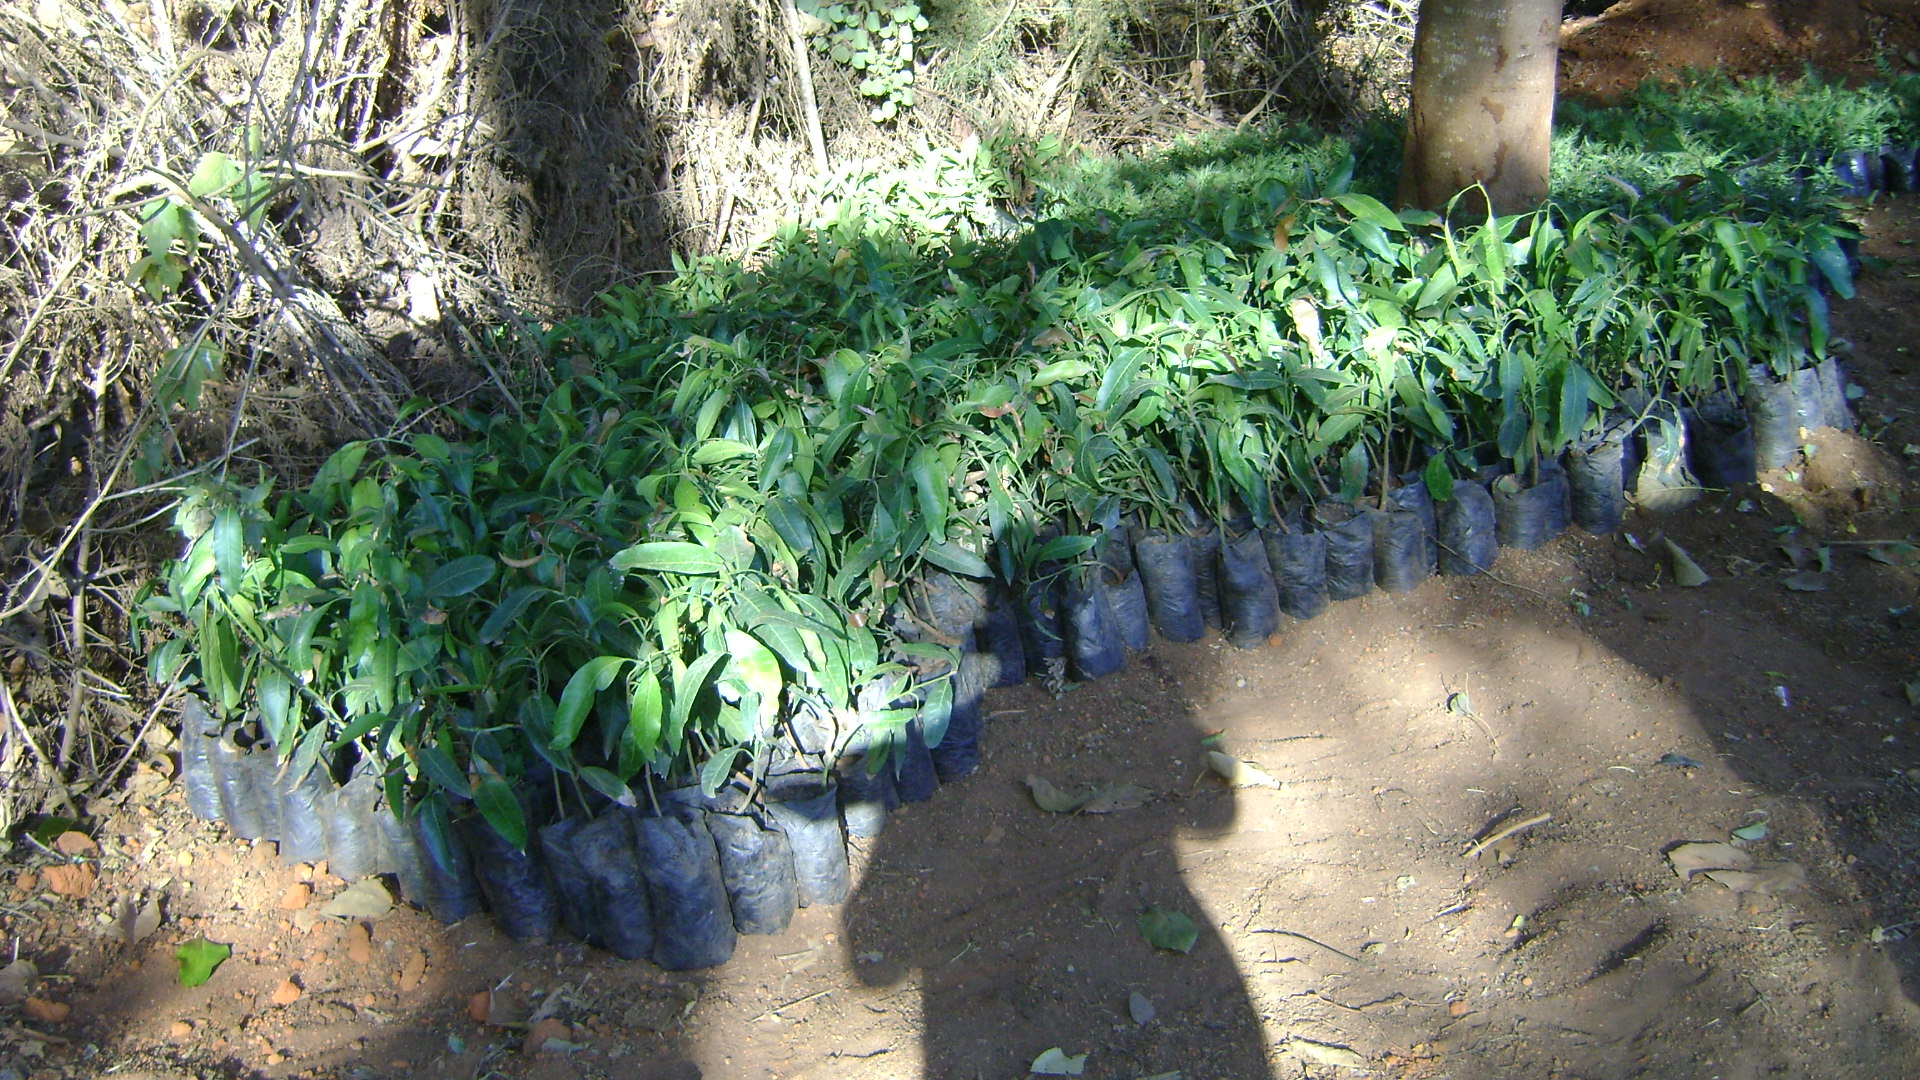 Hope has purchased seedlings to be planted this El Nino rains